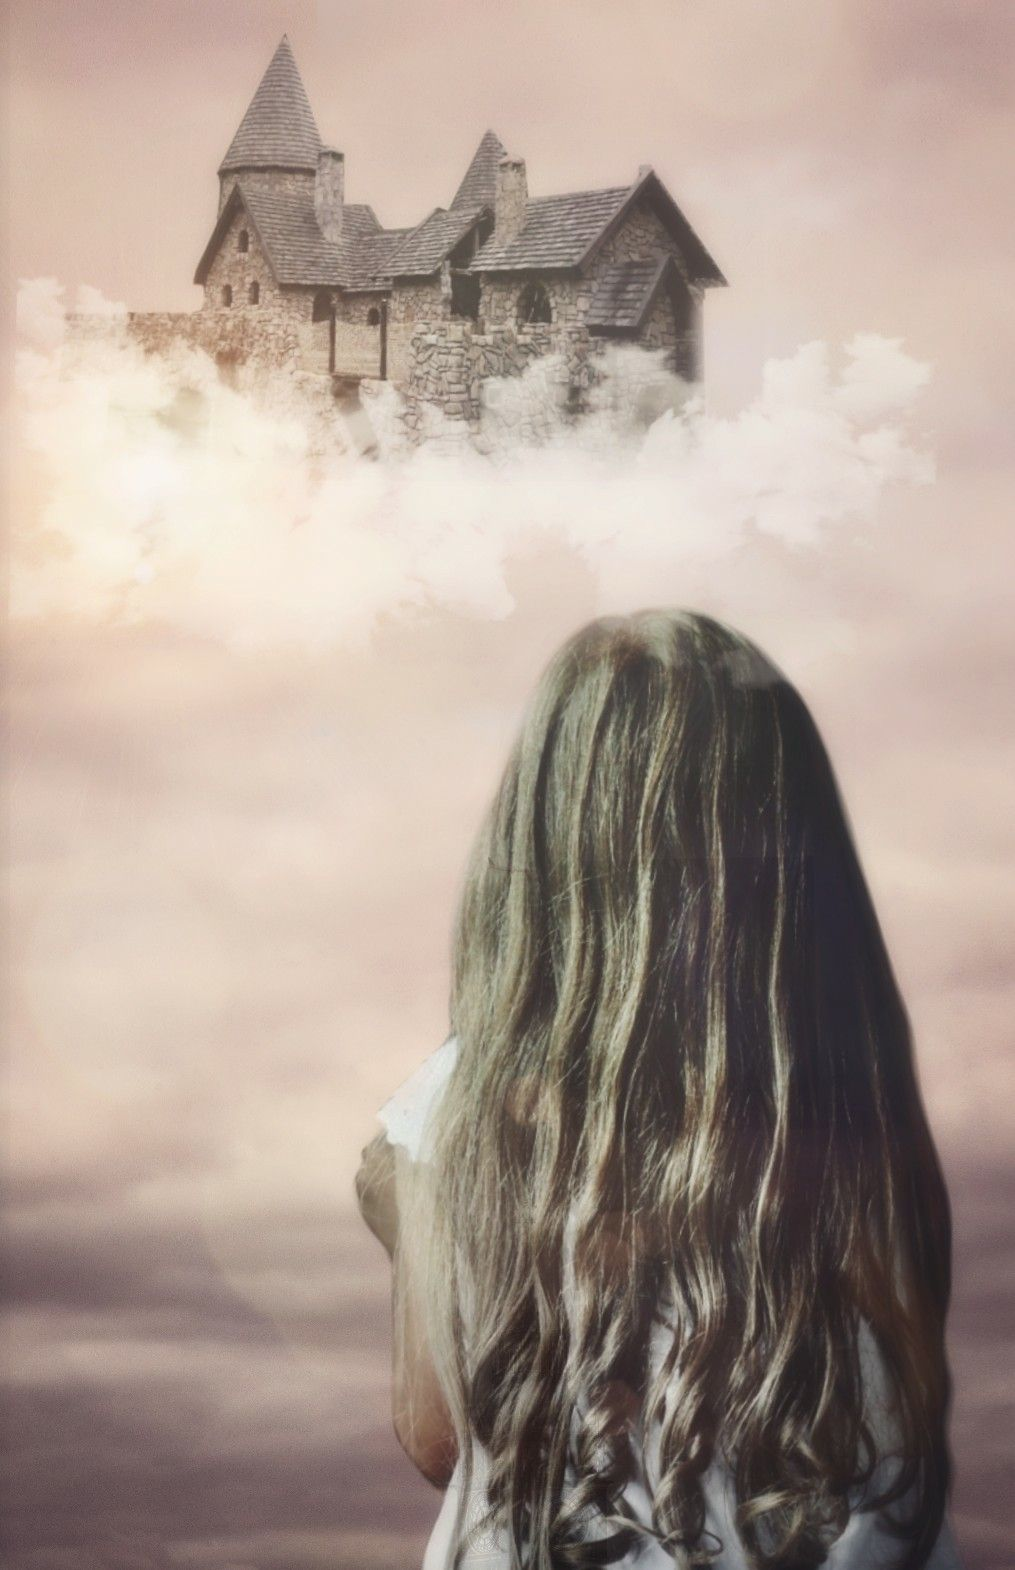 Forever building castles in the sky   I used girl from @alptipstextures  My own photos  Cliparts and lensflares  #edited #fantasy